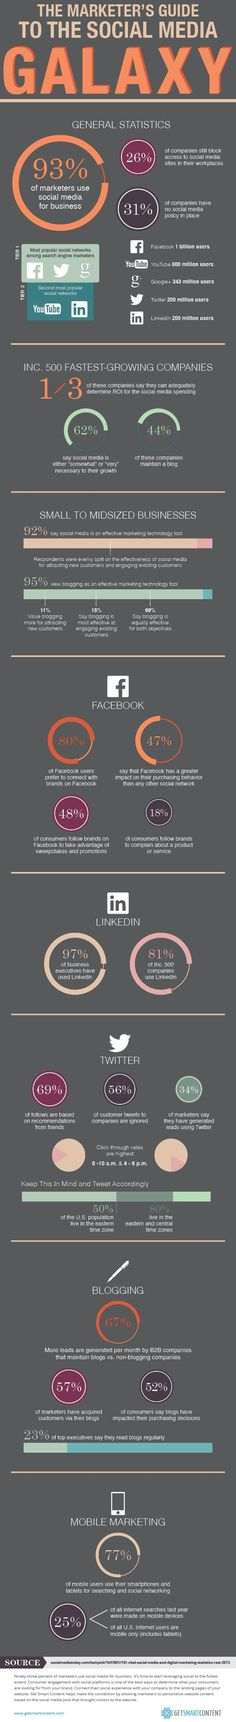 The Marketer's Guide to the Social Media Galaxy [Infographic]